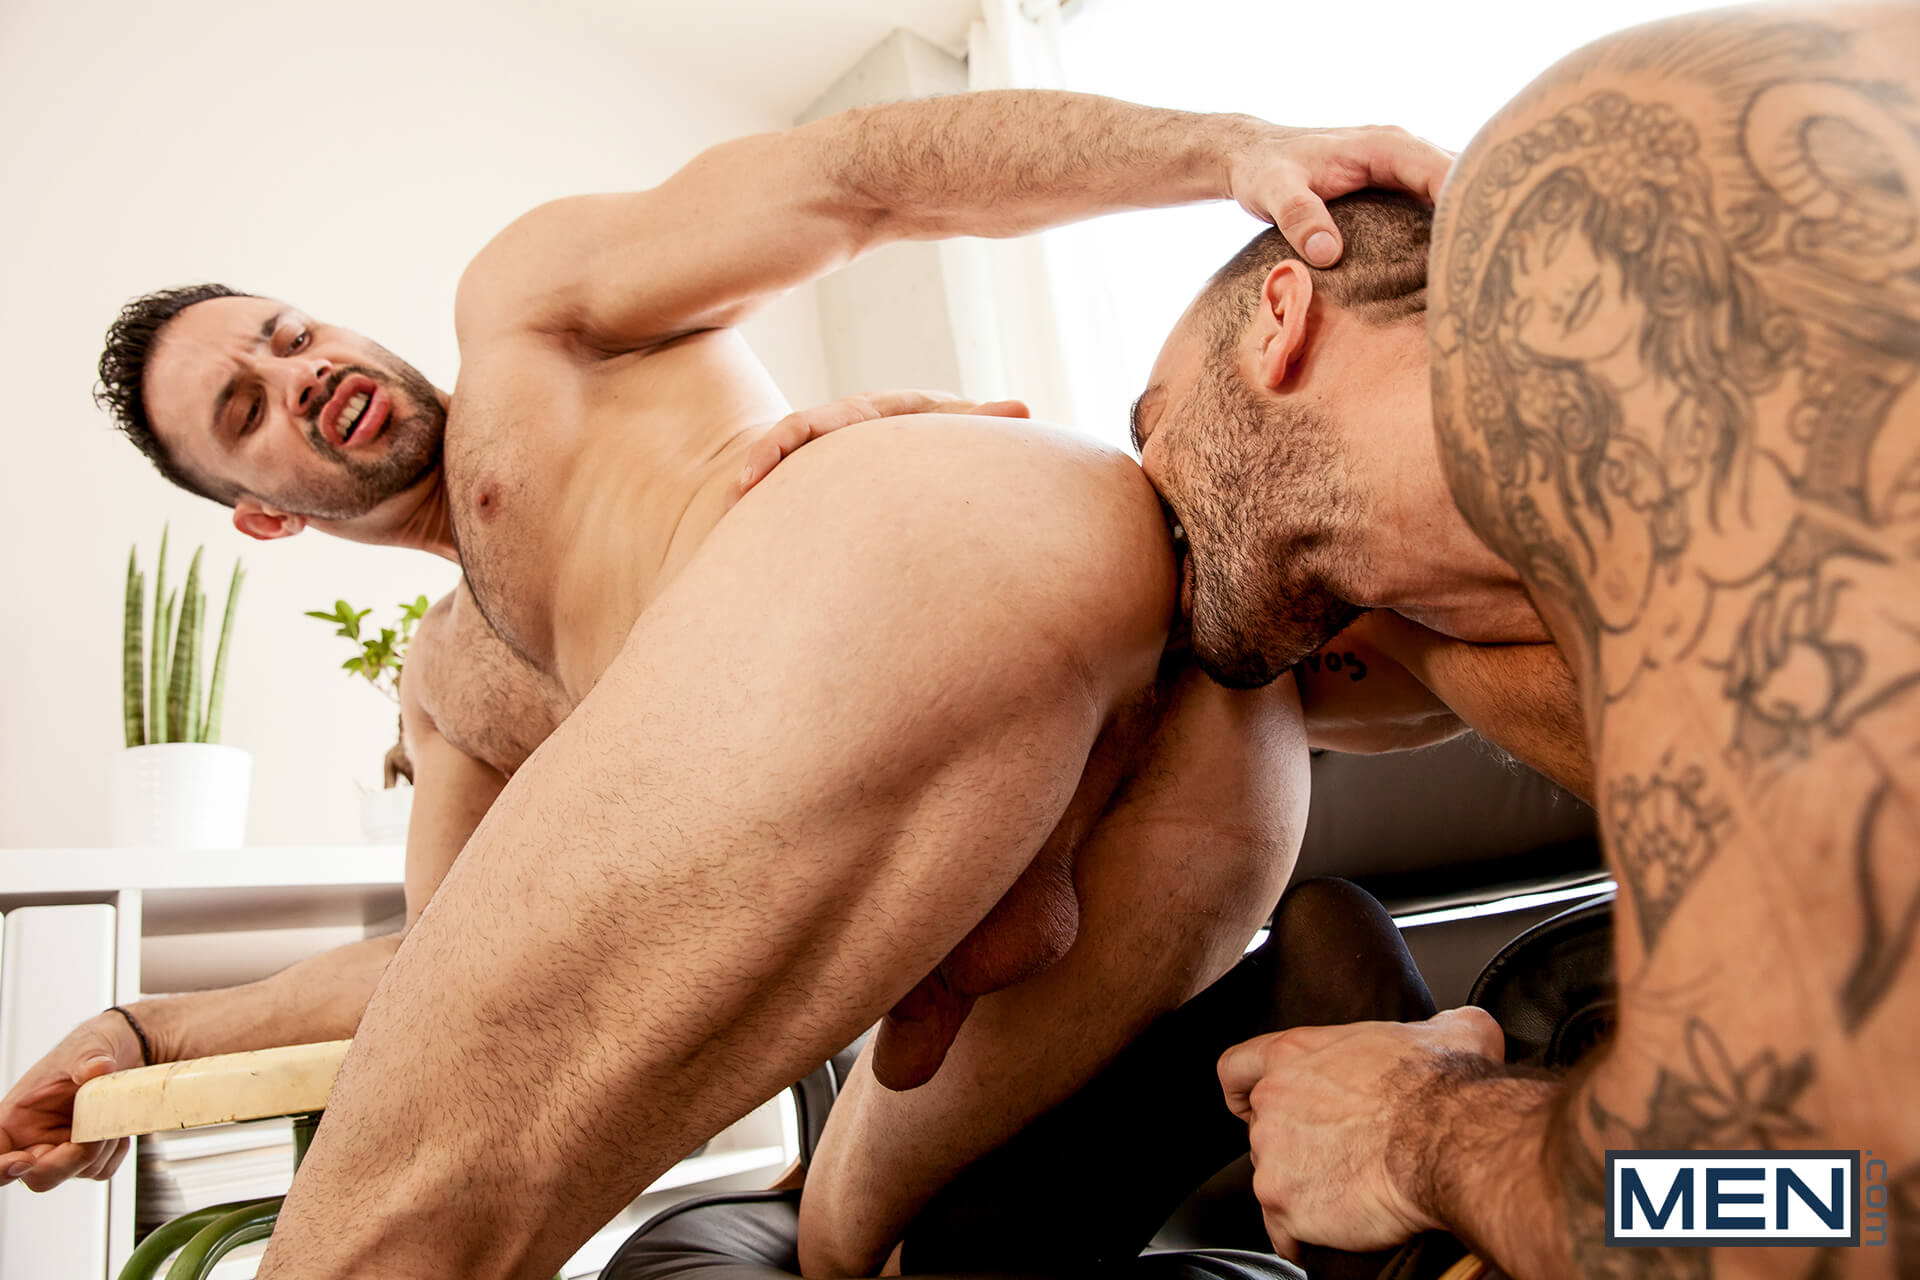 men drill my hole another life part 1 damien crosse flex gay porn blog image 15